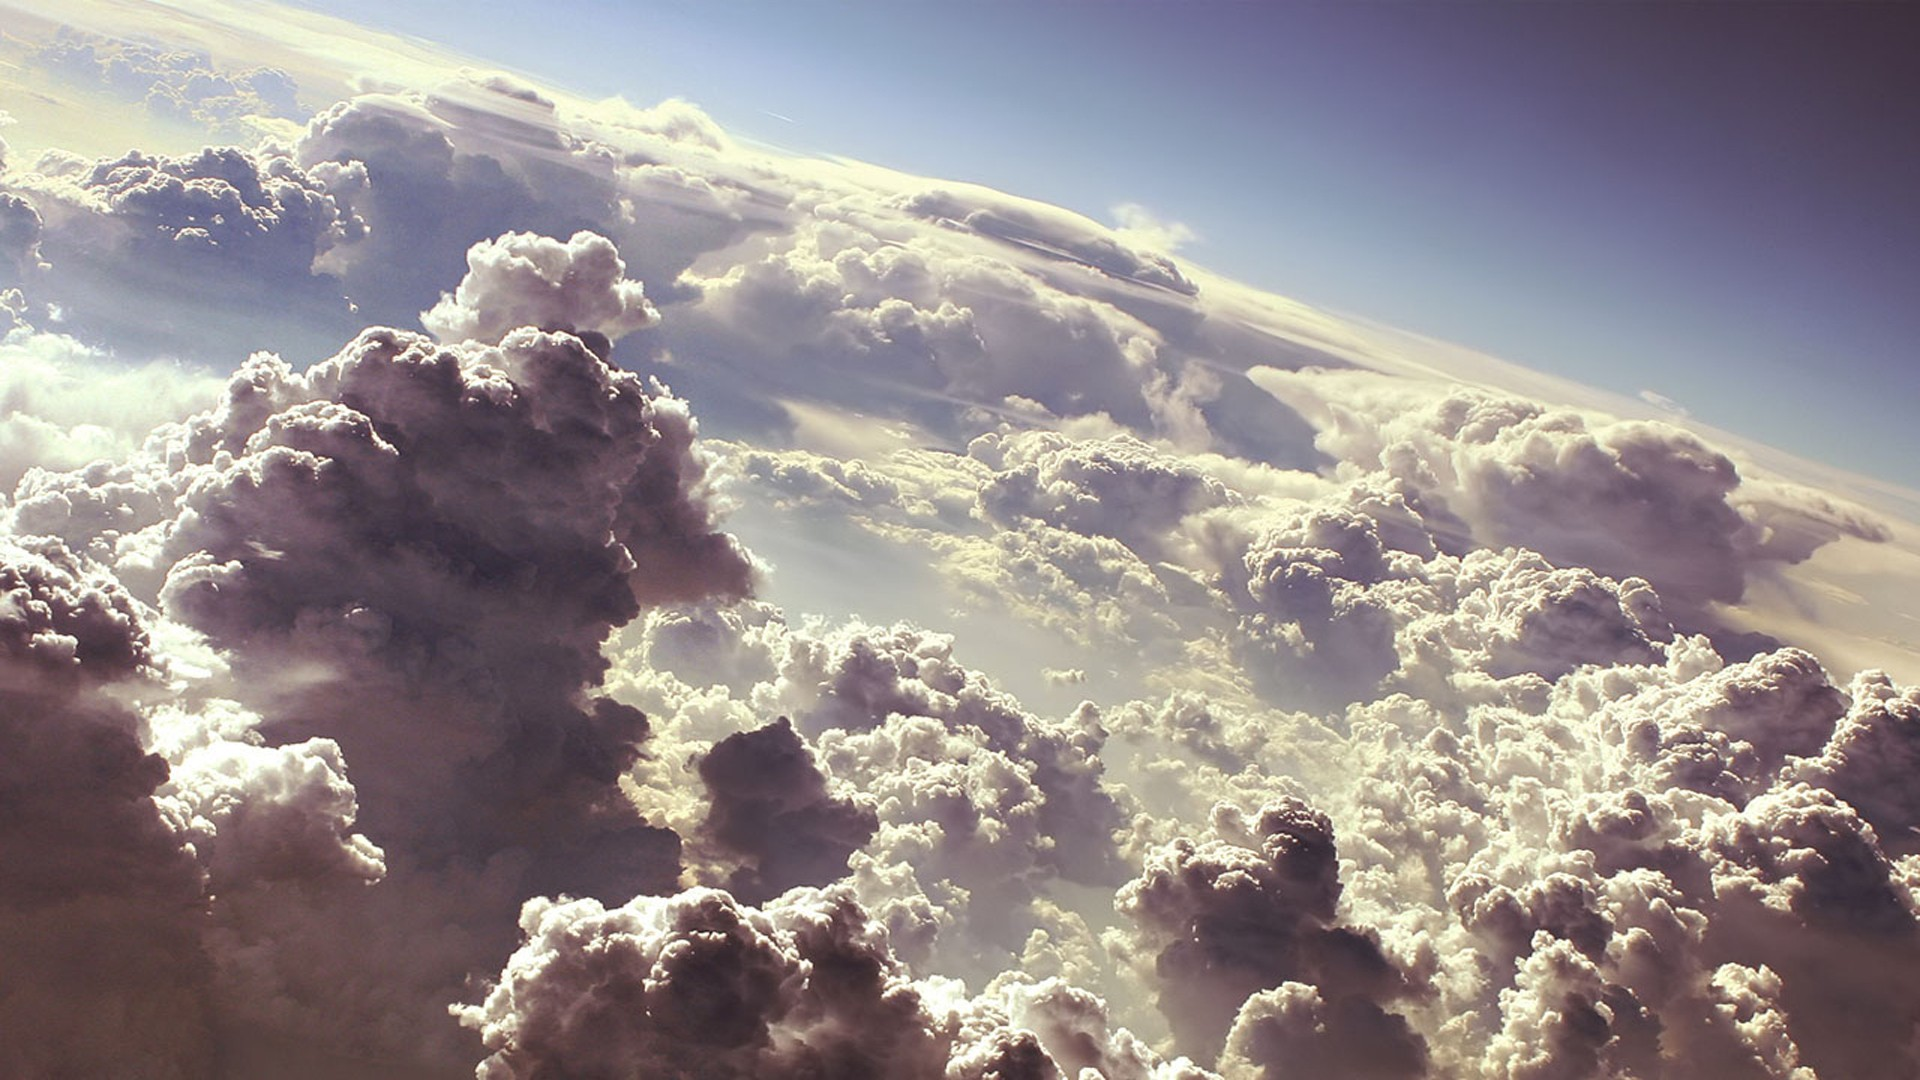 Download Cloud Background Images HD Wallpapers 1920x1080